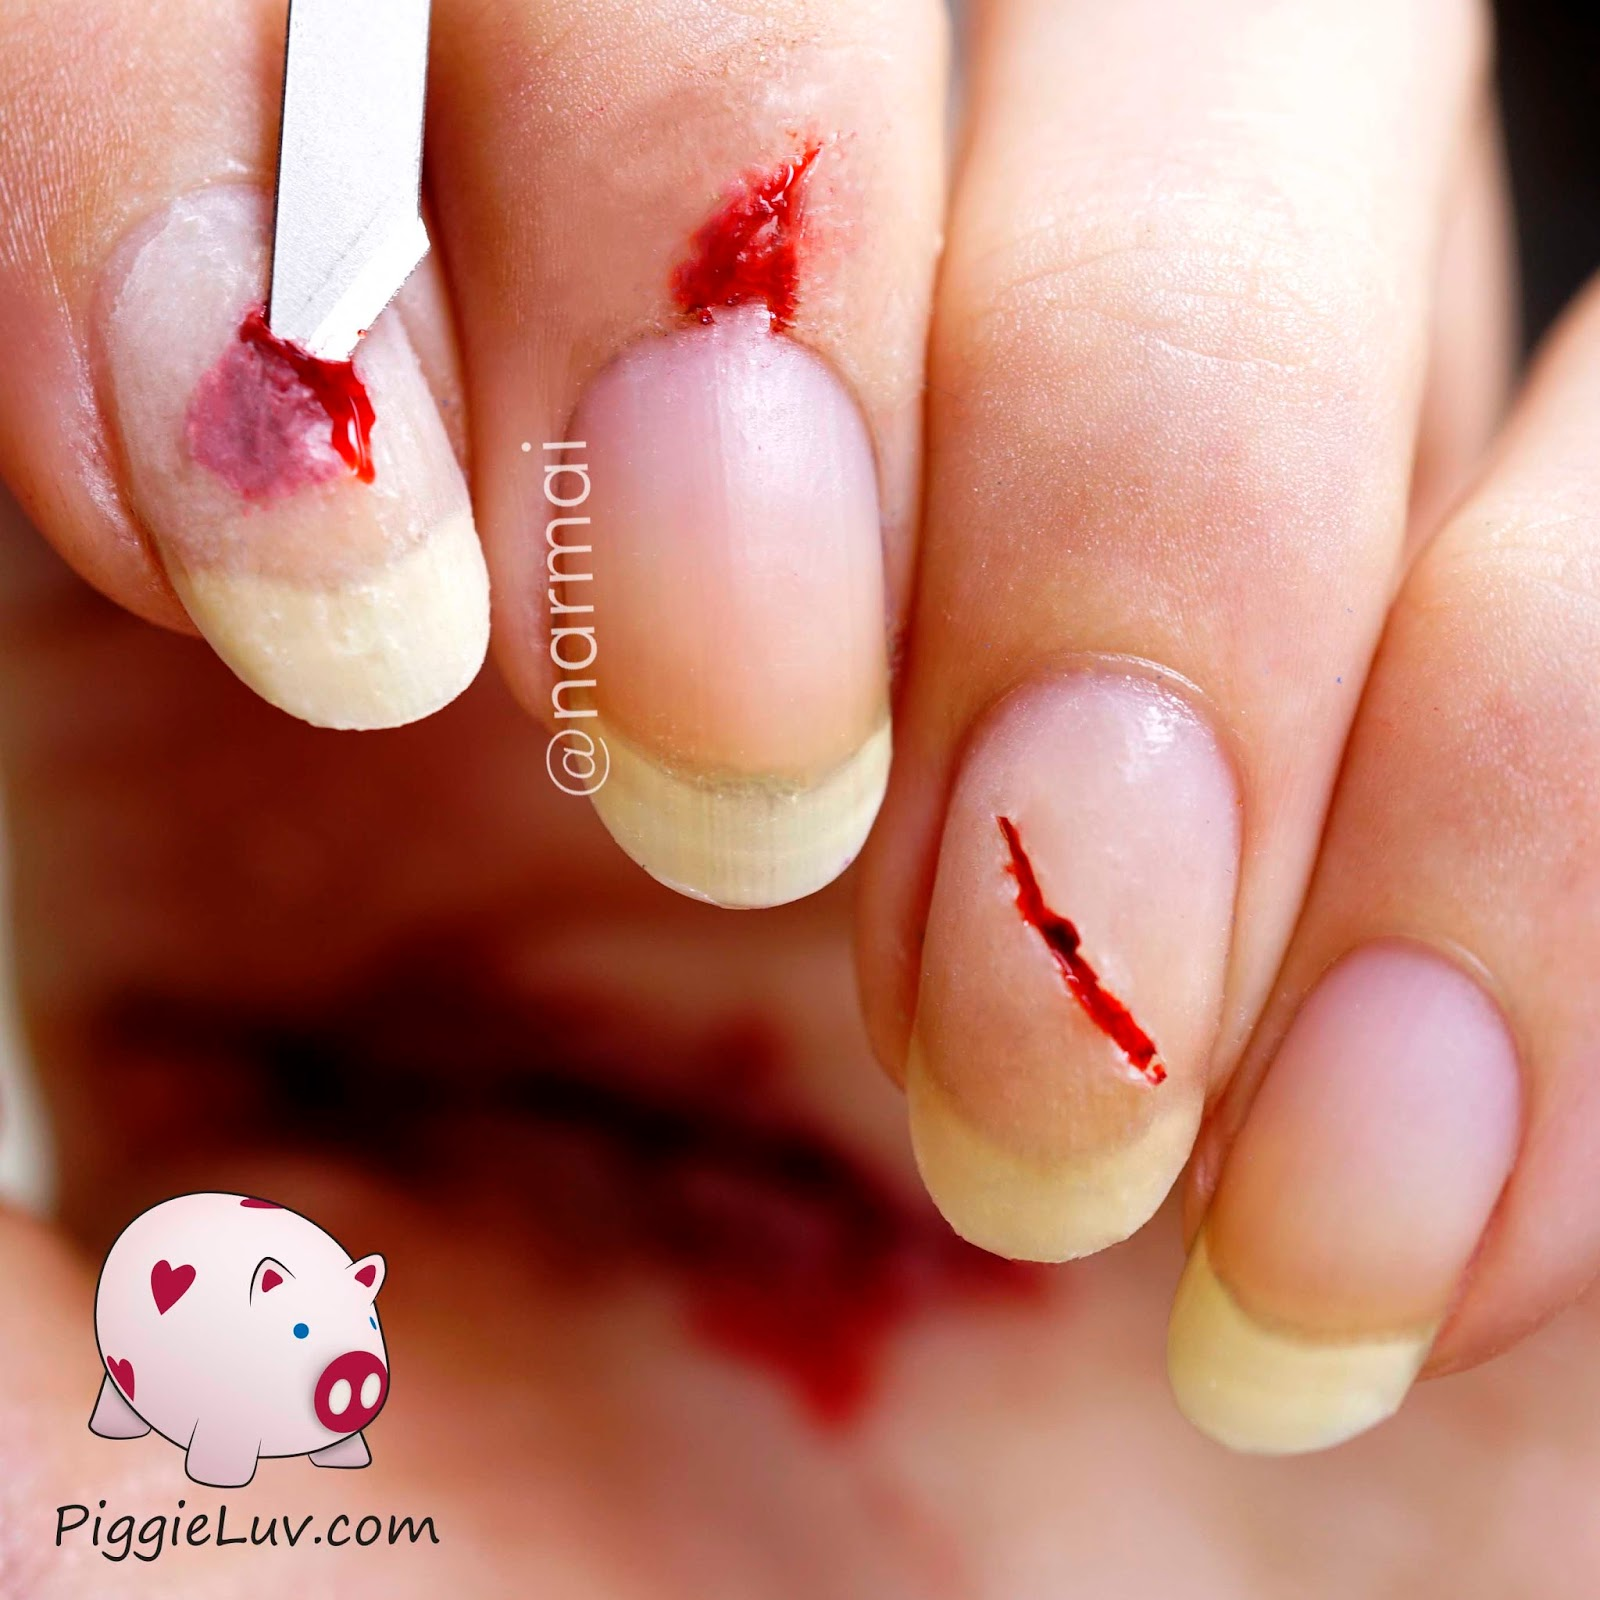 PiggieLuv: Bloody razor cuts nail art for Halloween